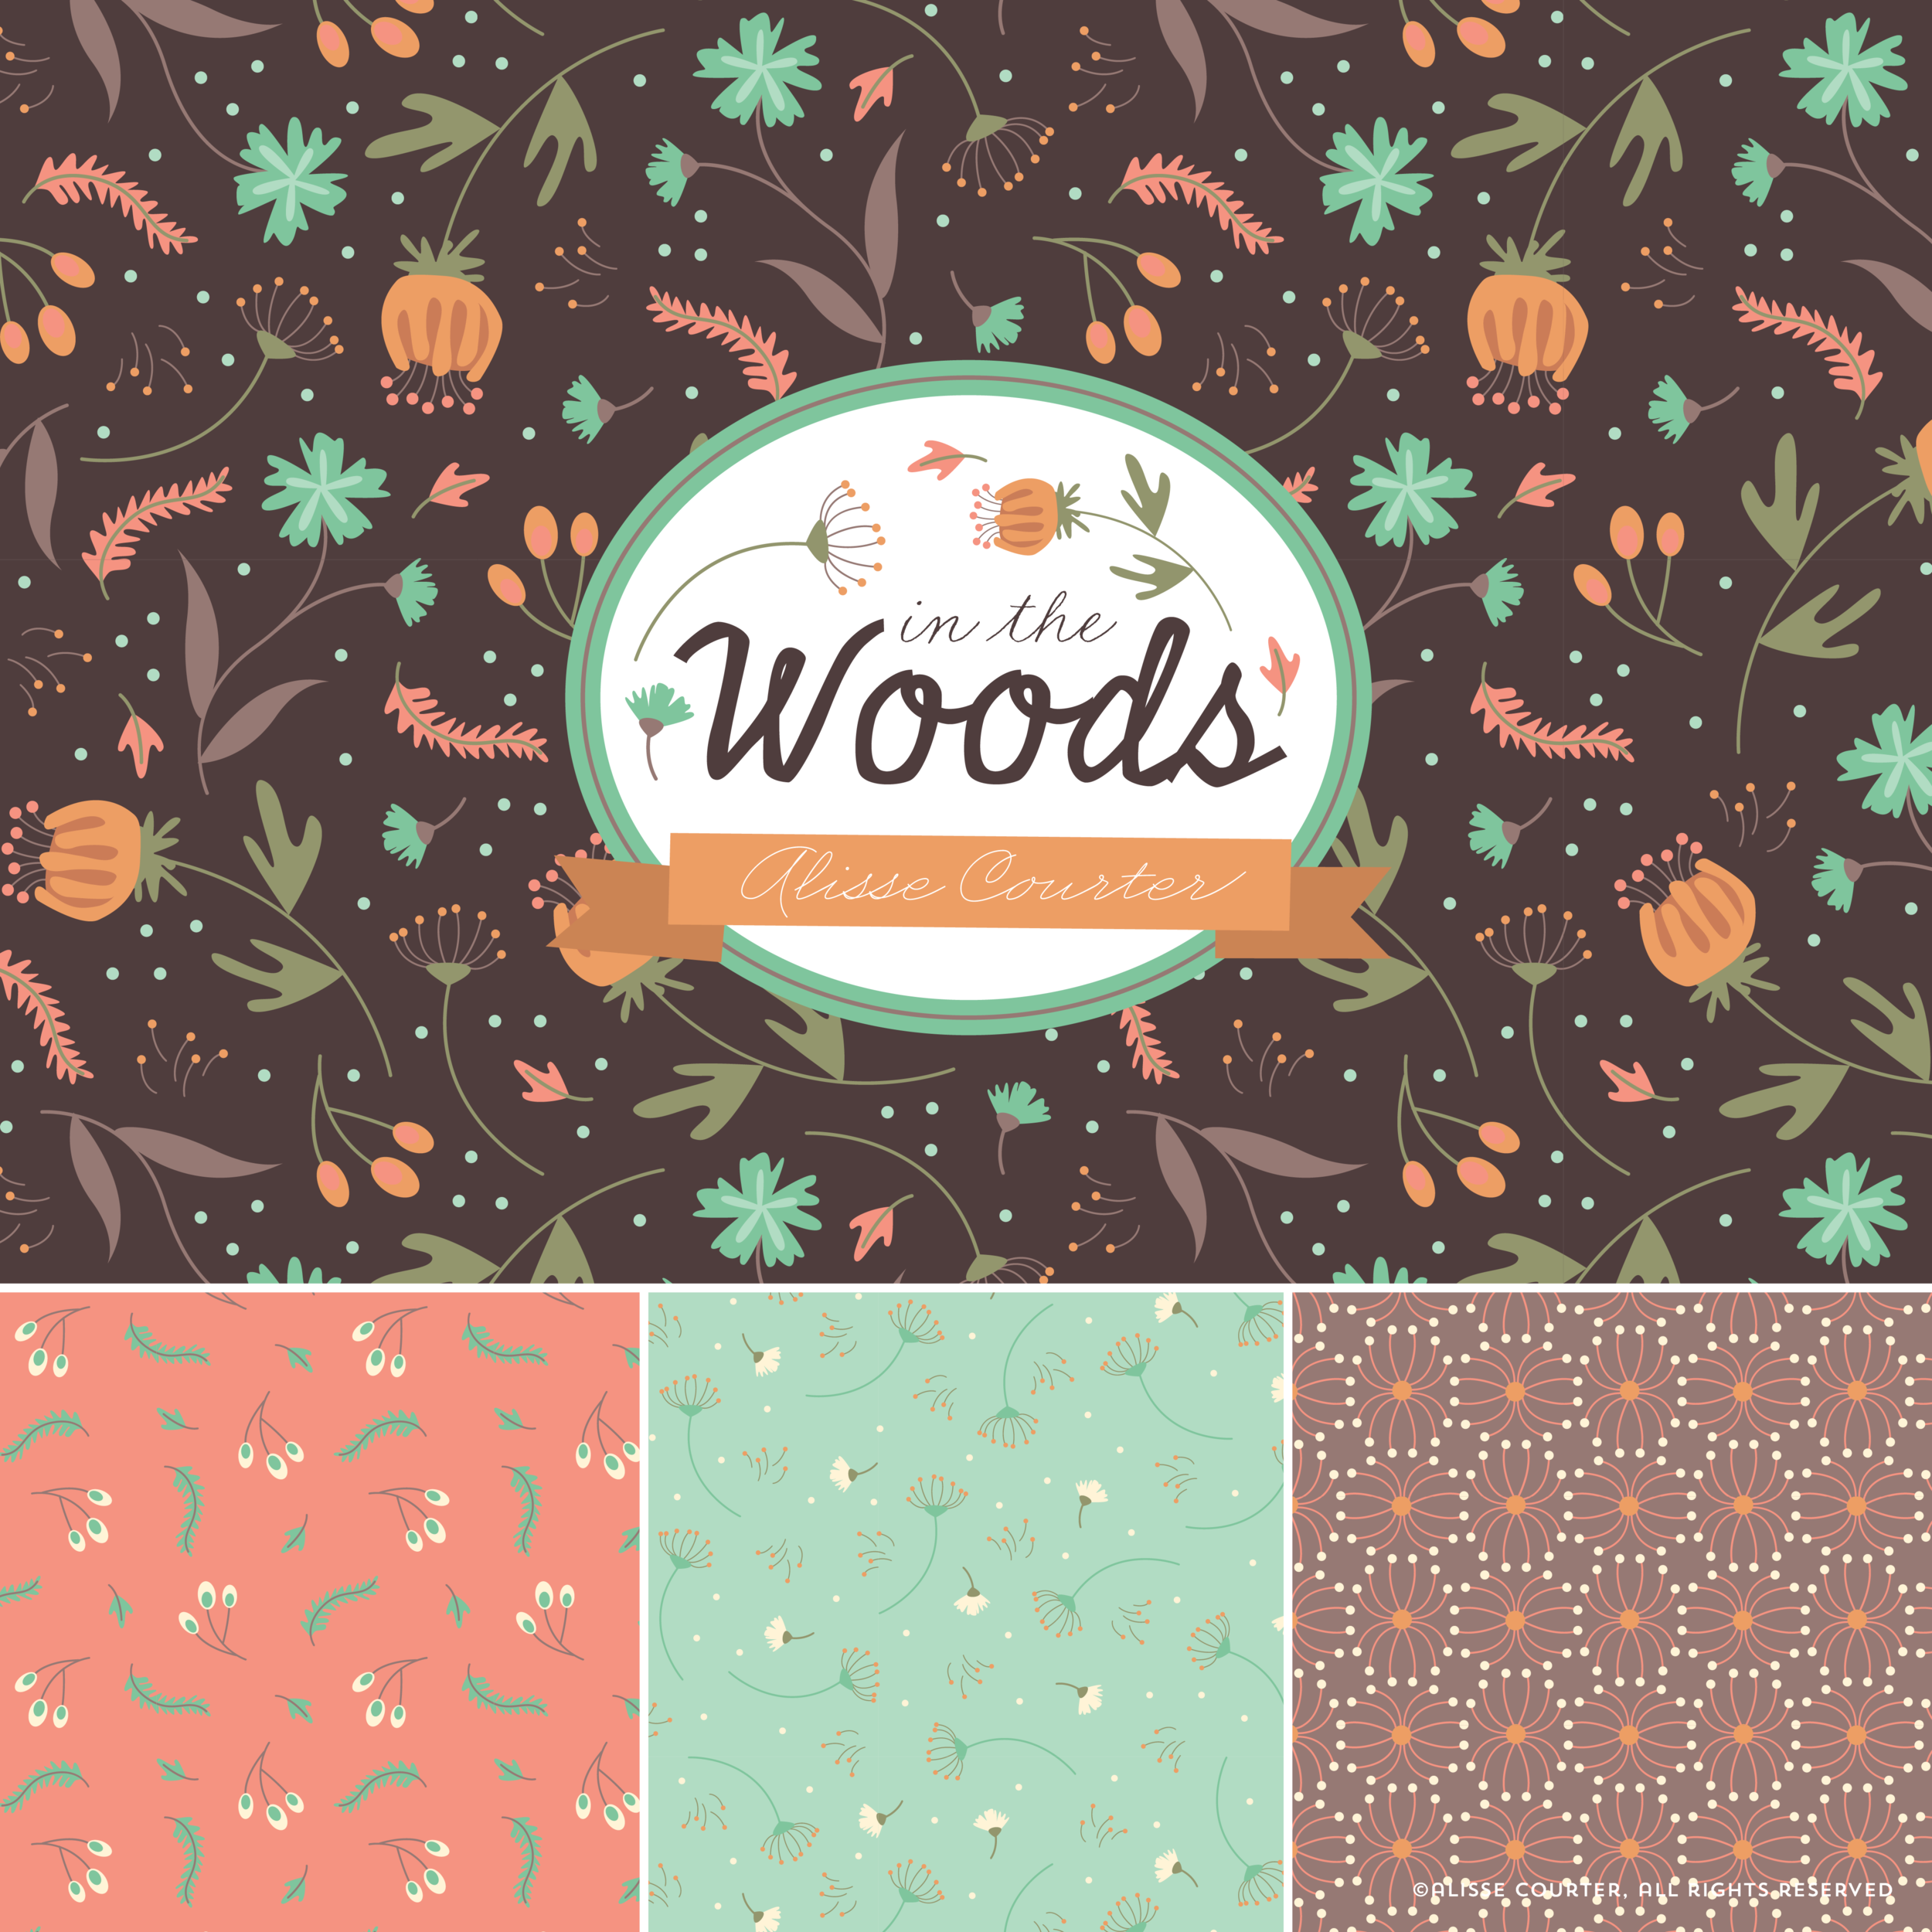 In the Woods_preview.png